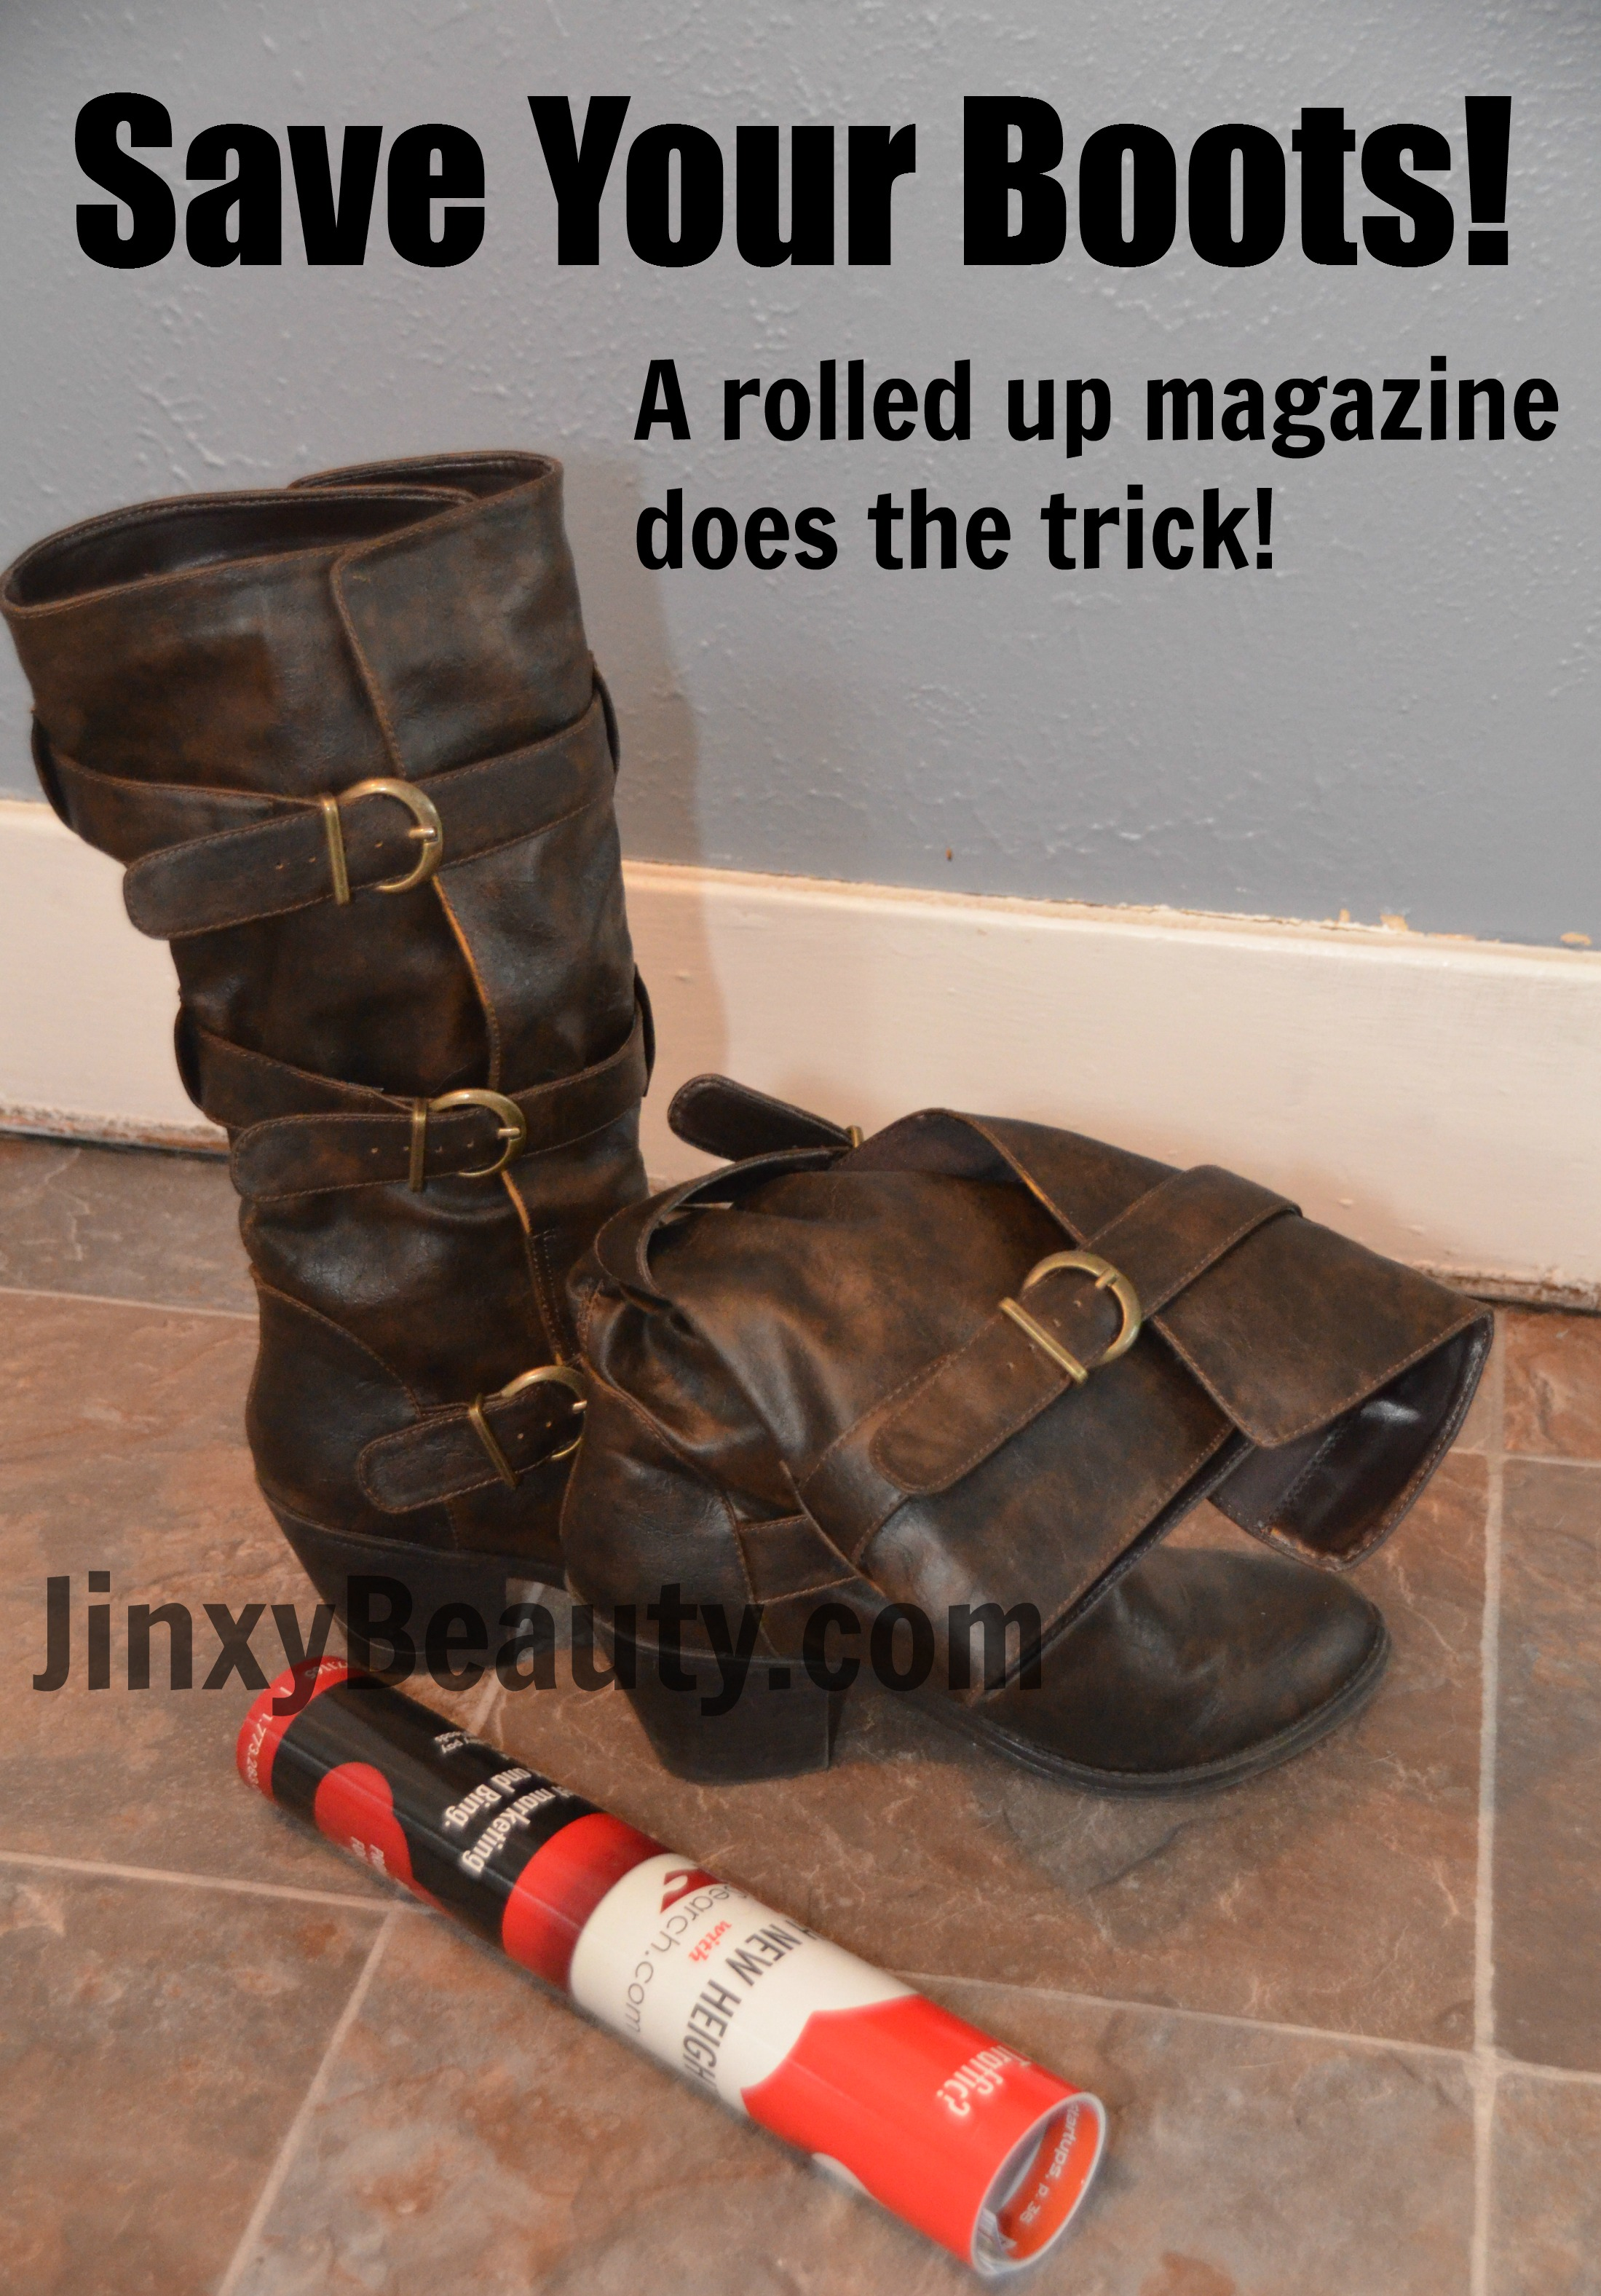 Save your boots with a rolled up magazine for storage.